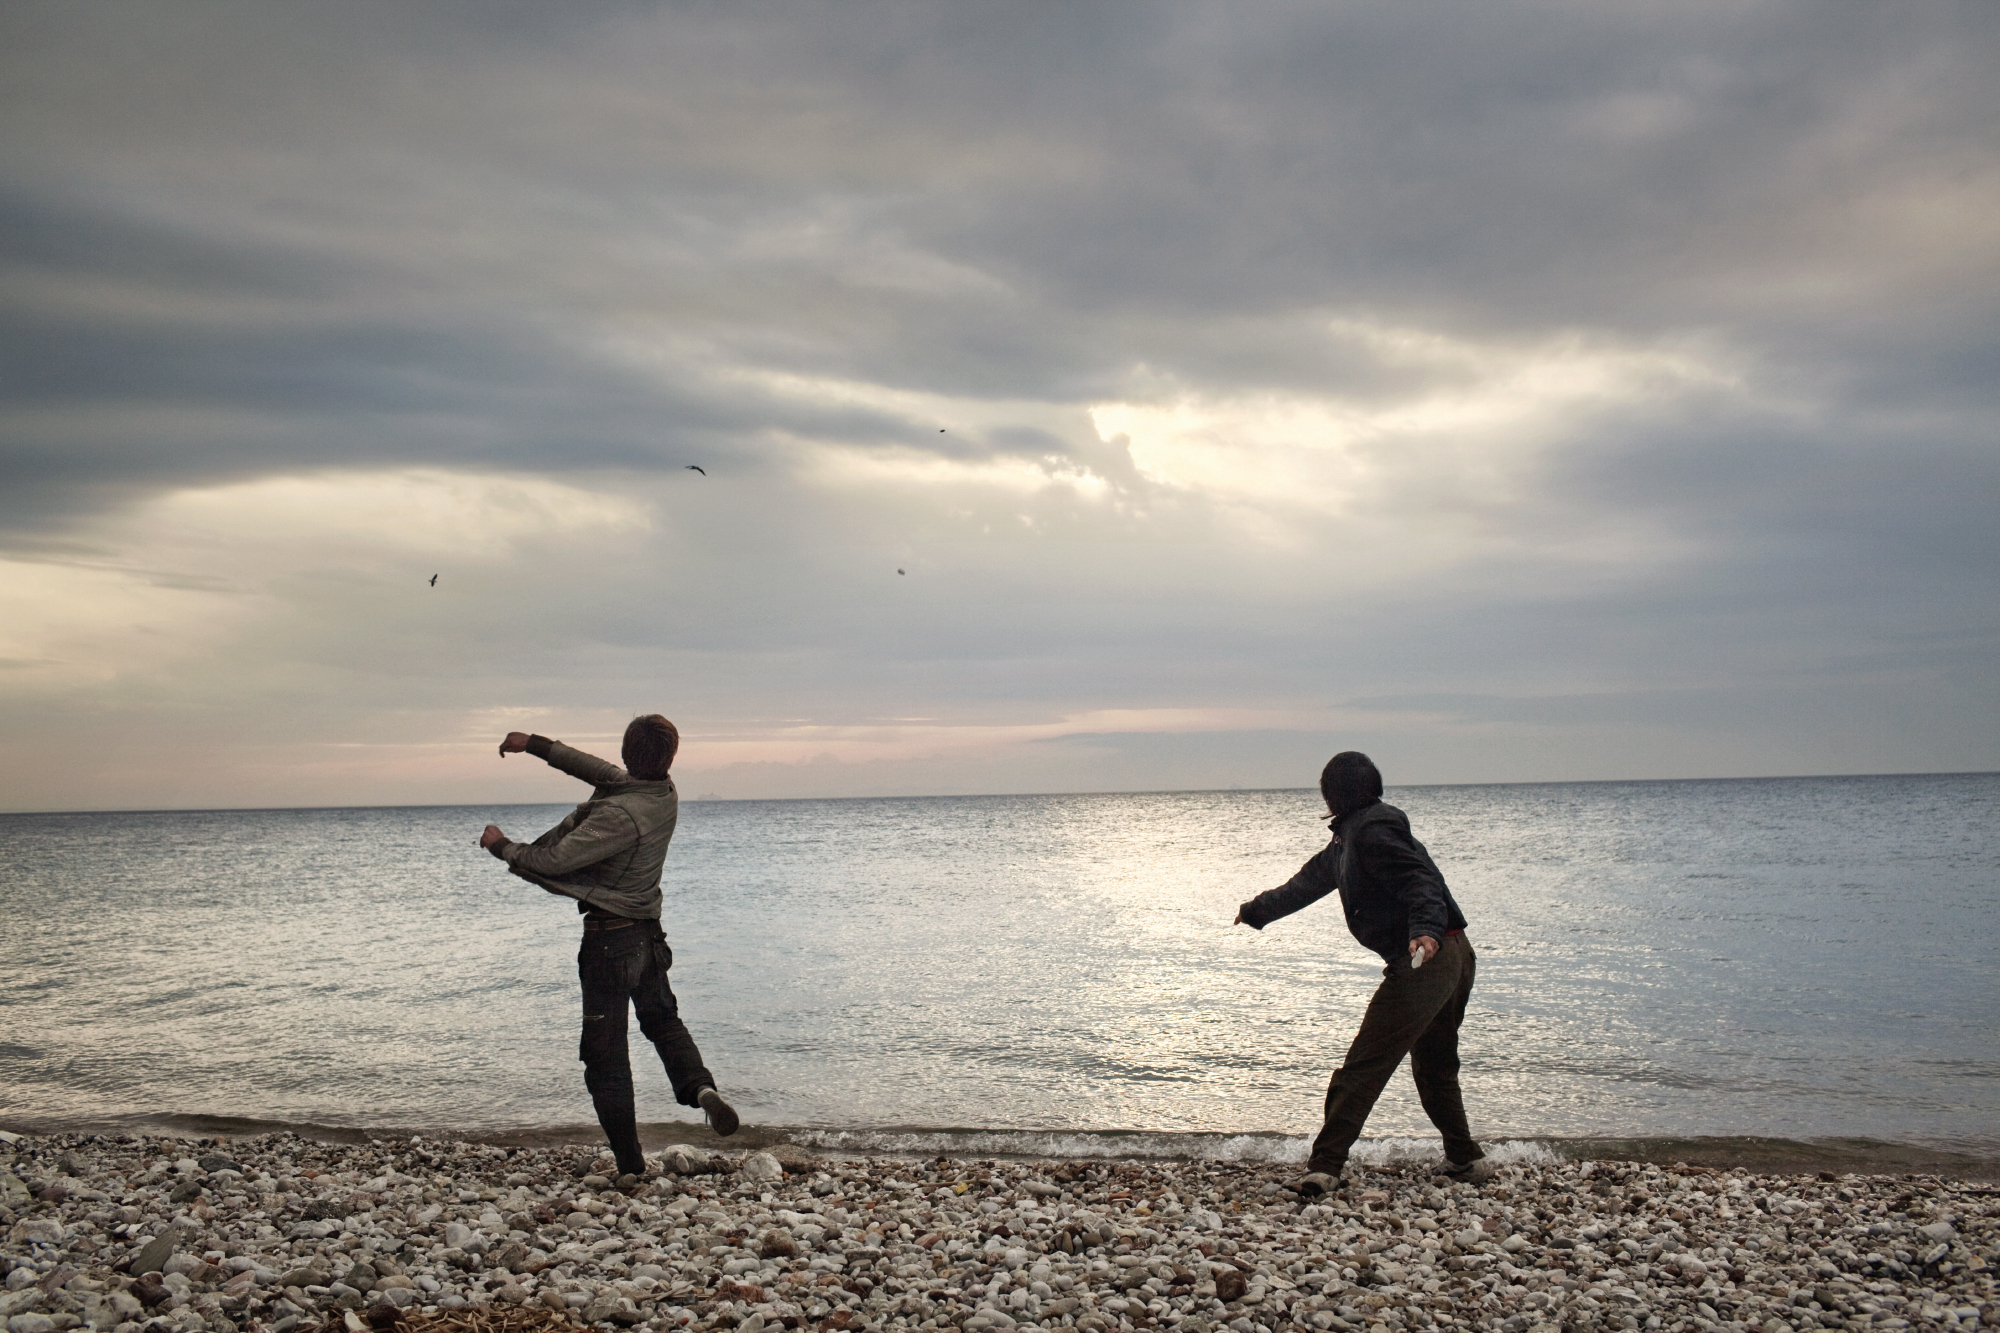 Afghan boys throwing stones into the sea in Patras, Greece. They are waiting for the evening, when they will try to sneak into the port to board a ship bound for Italy.